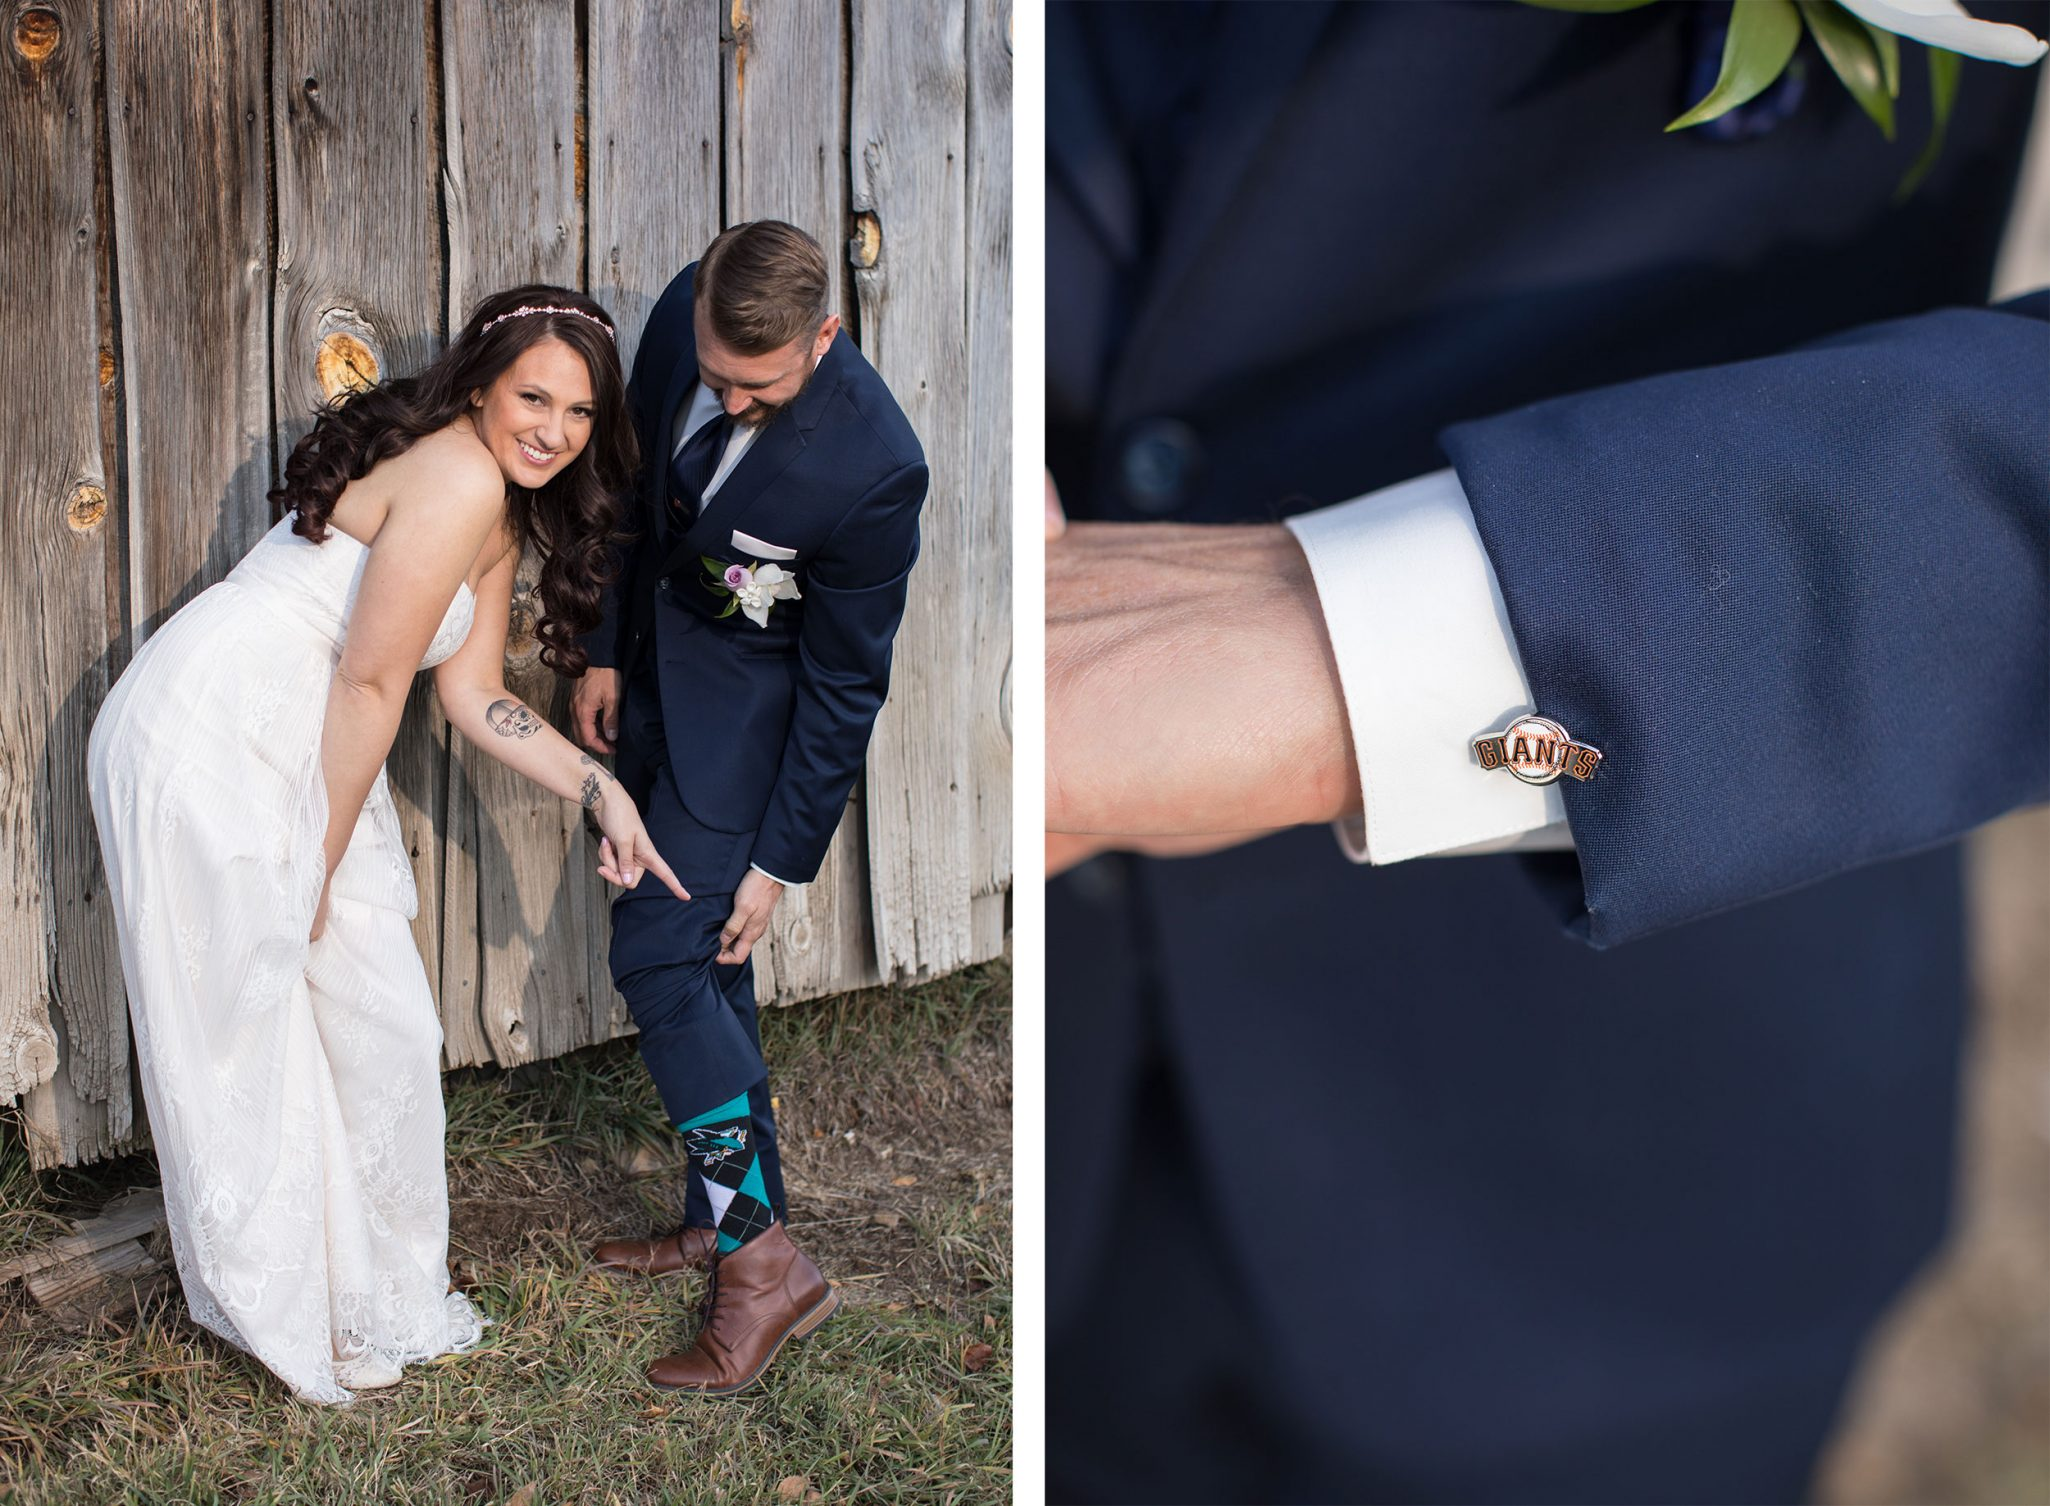 Groom's wedding socks & cuff links